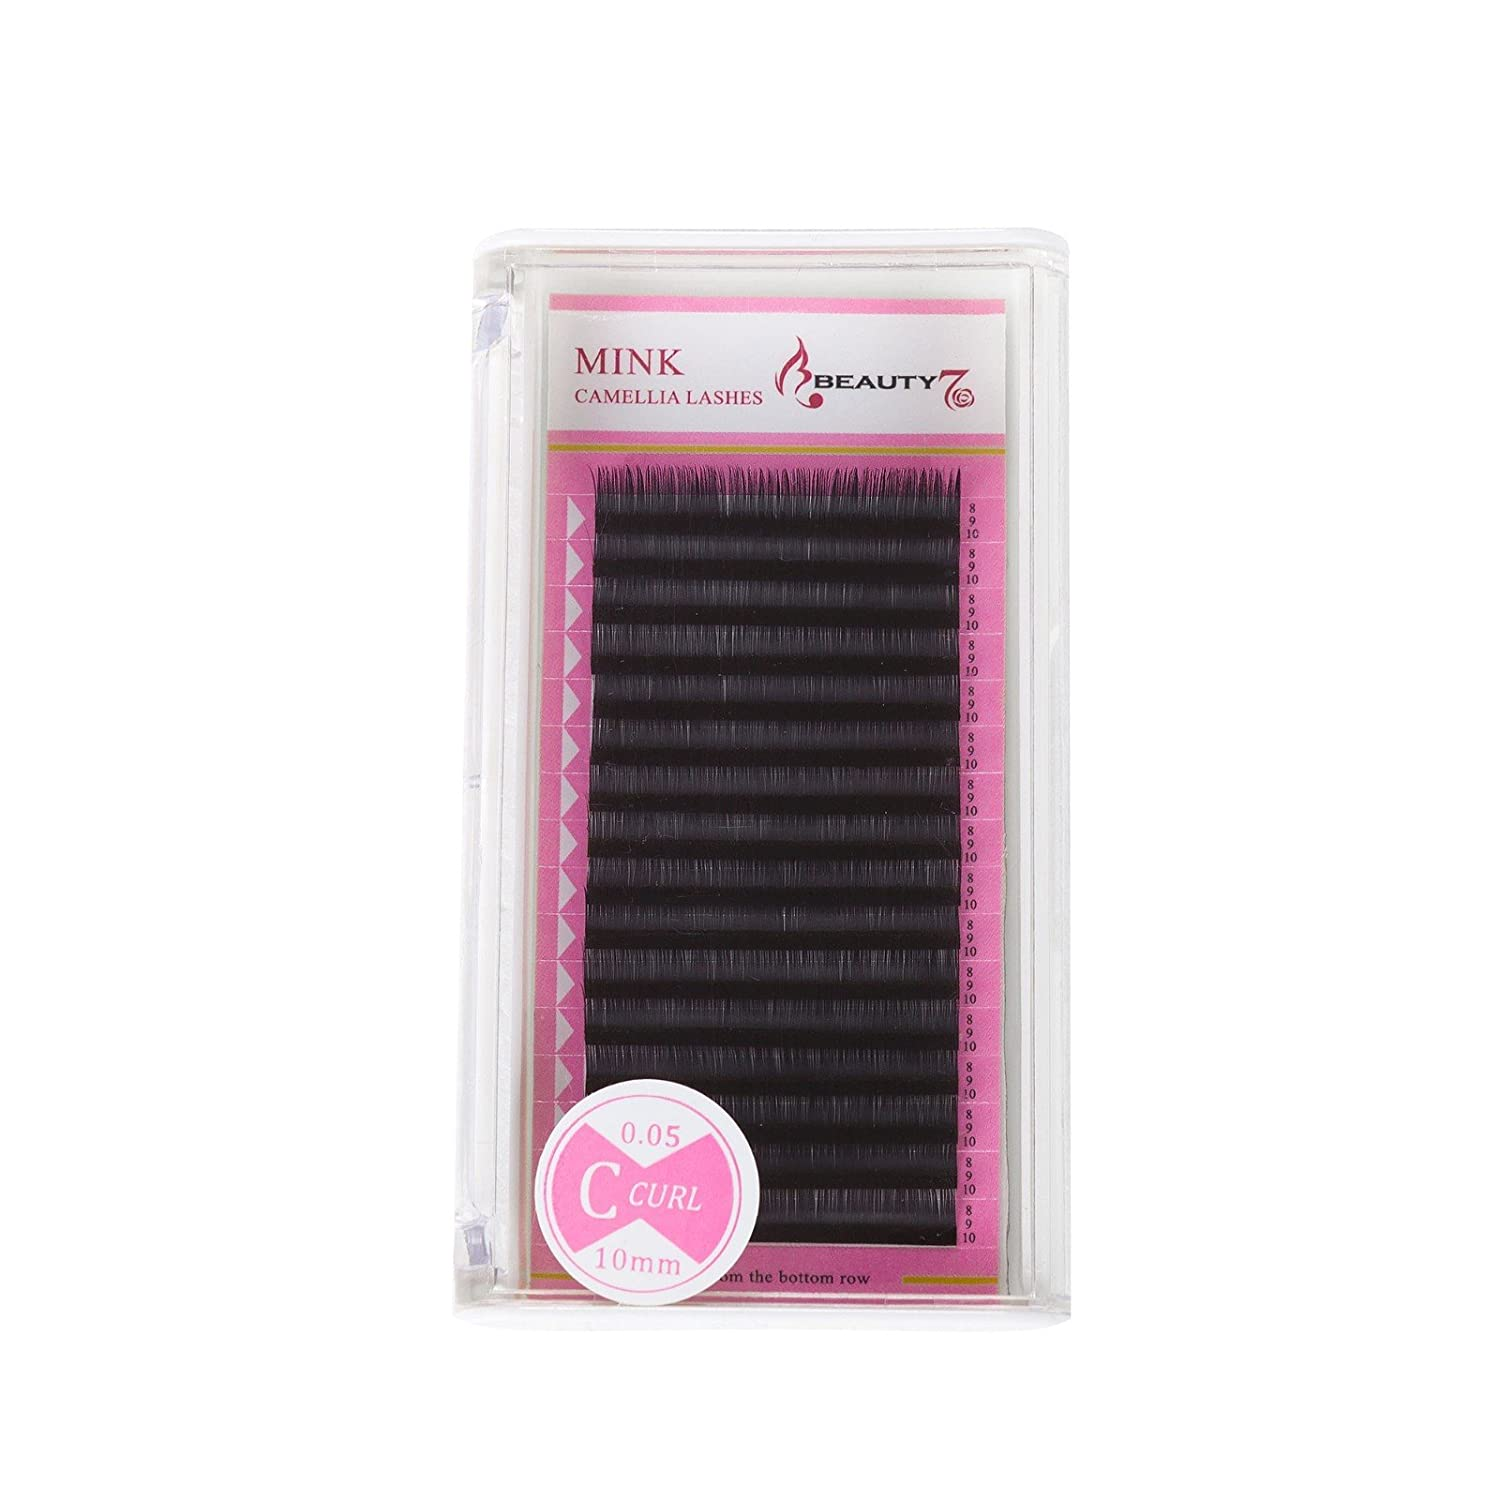 73cb045c3f6 Amazon.com : Beauty7 Natural Camellia Blossom Fanning Curl D Volume Lashes  Matte Synthetic MINK Individual Eyelash Extensions 0.05mm Thickness  10/11/12mm ...